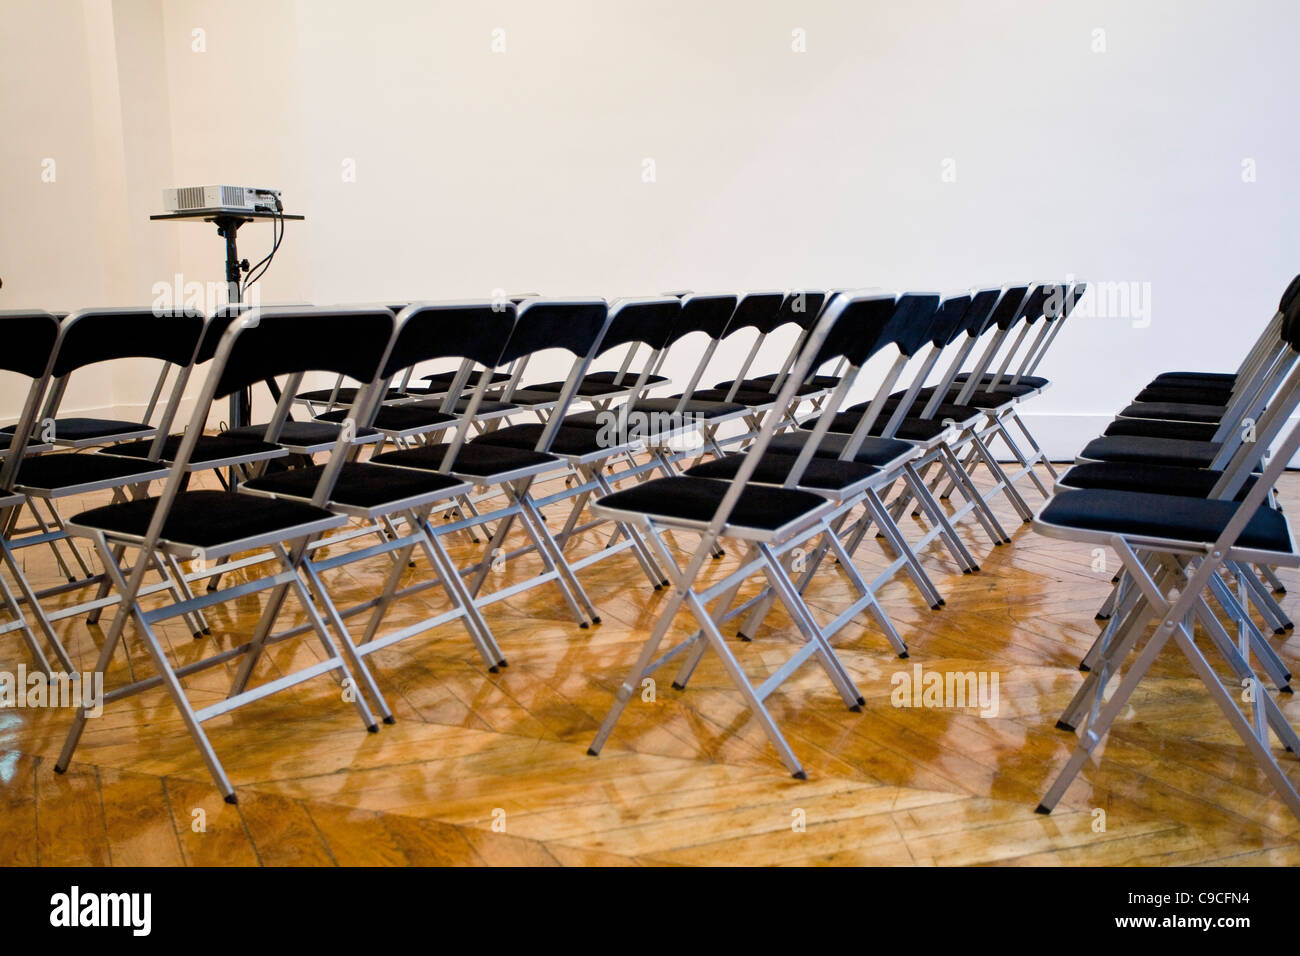 folding chairs lined up in conference room stock photo 40228416 alamy